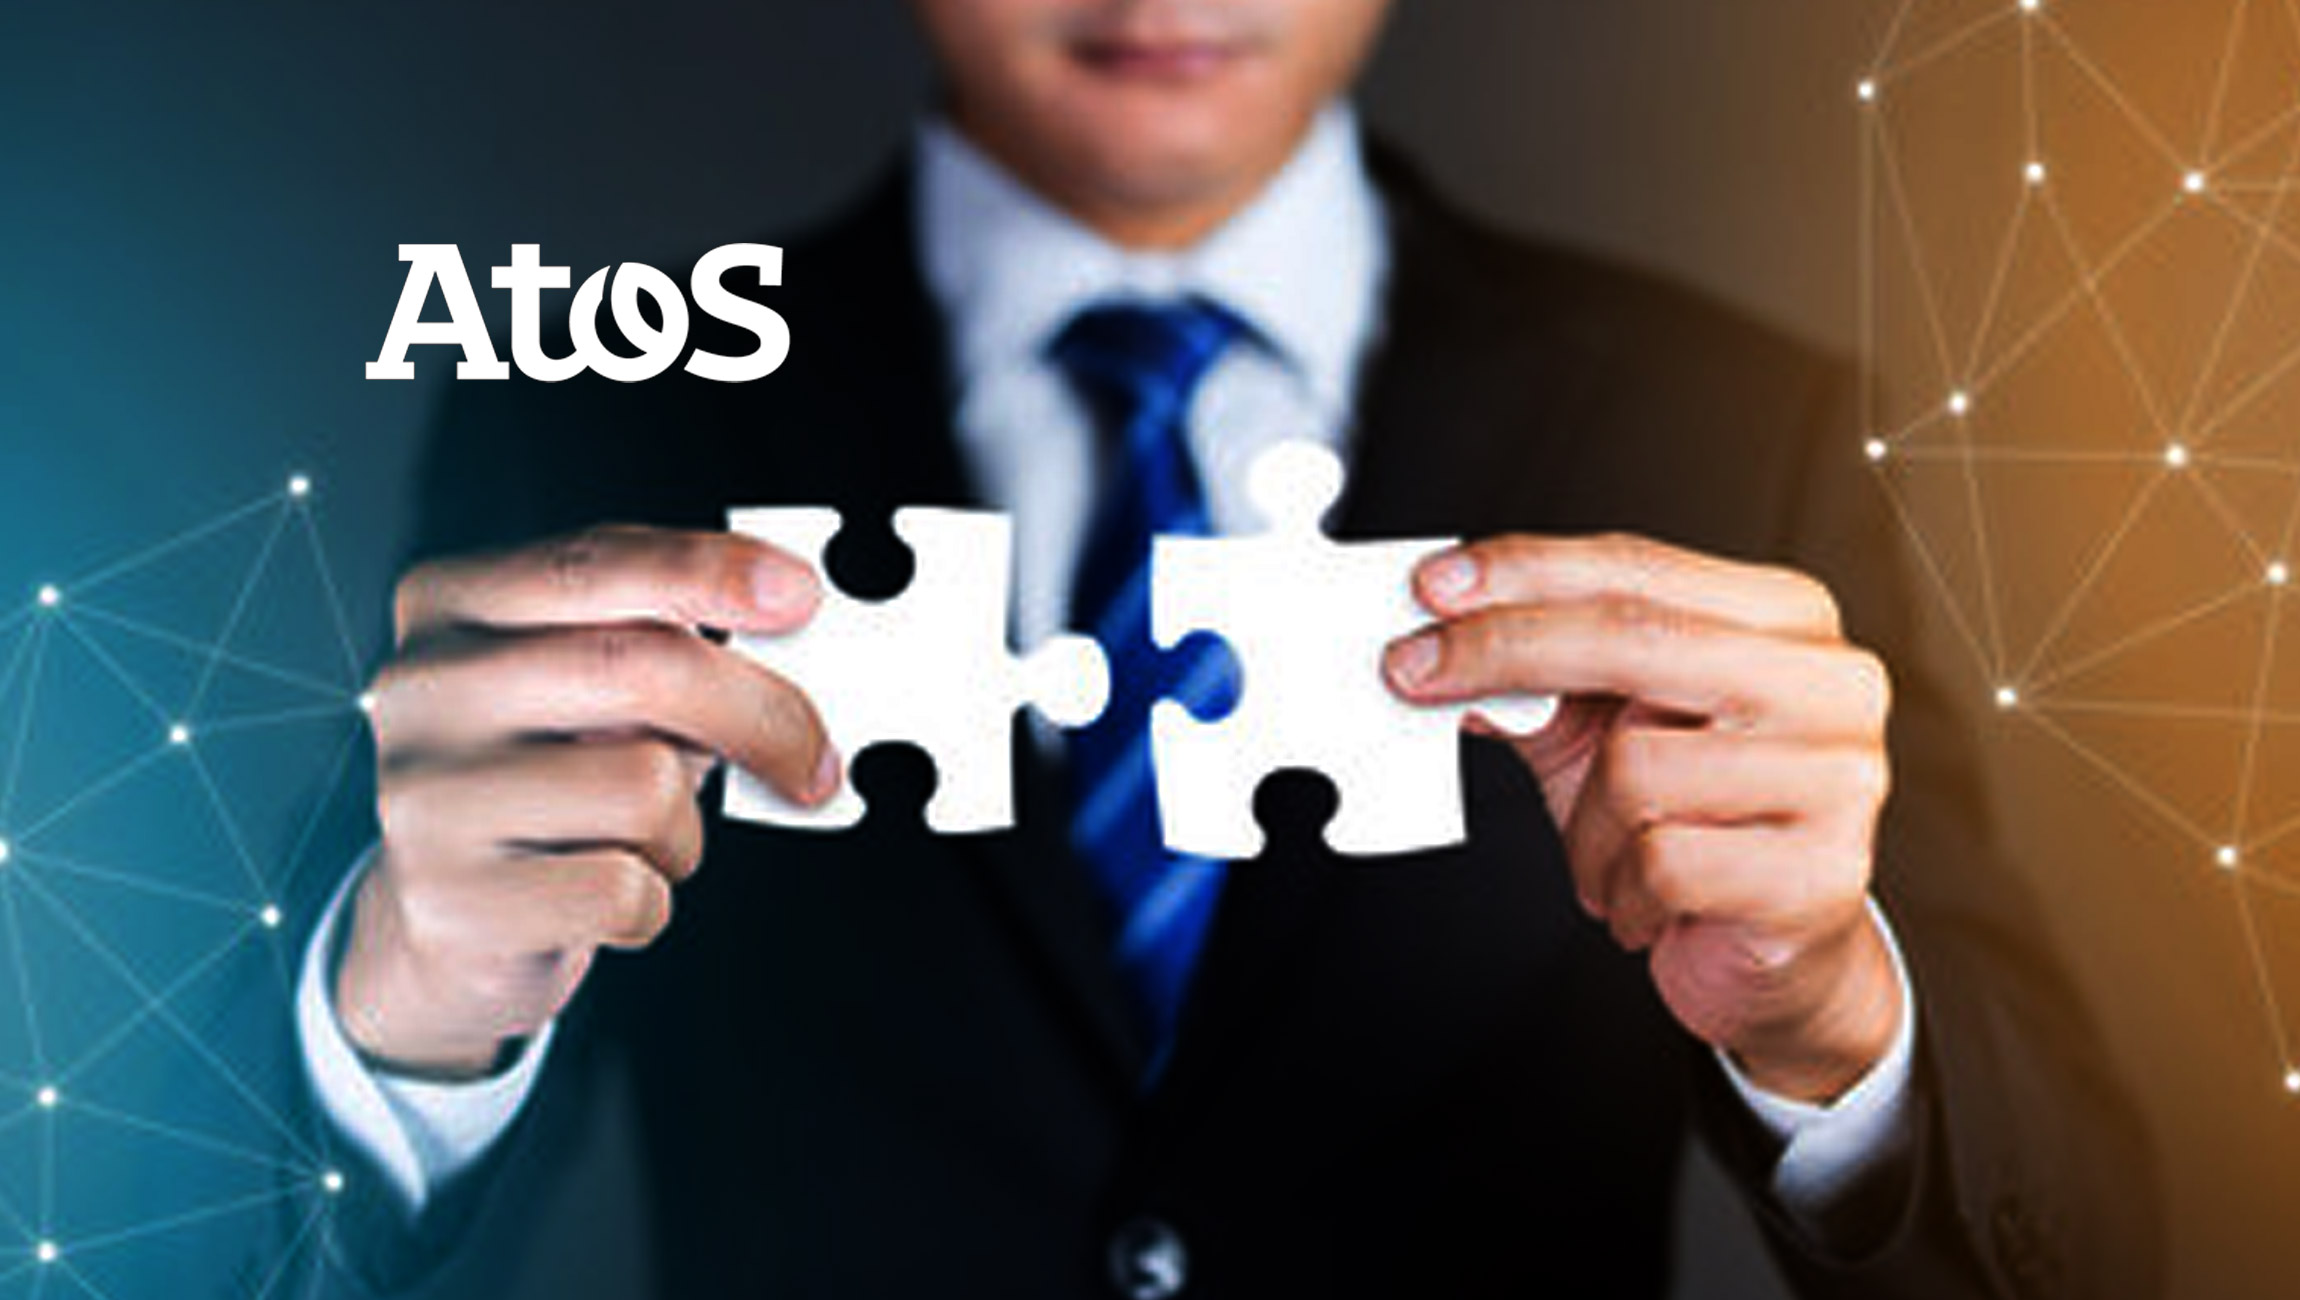 Atos Acquires Visual BI to Enhance Its Ability to Address Customers' Increasing Need for Analytics in the Cloud